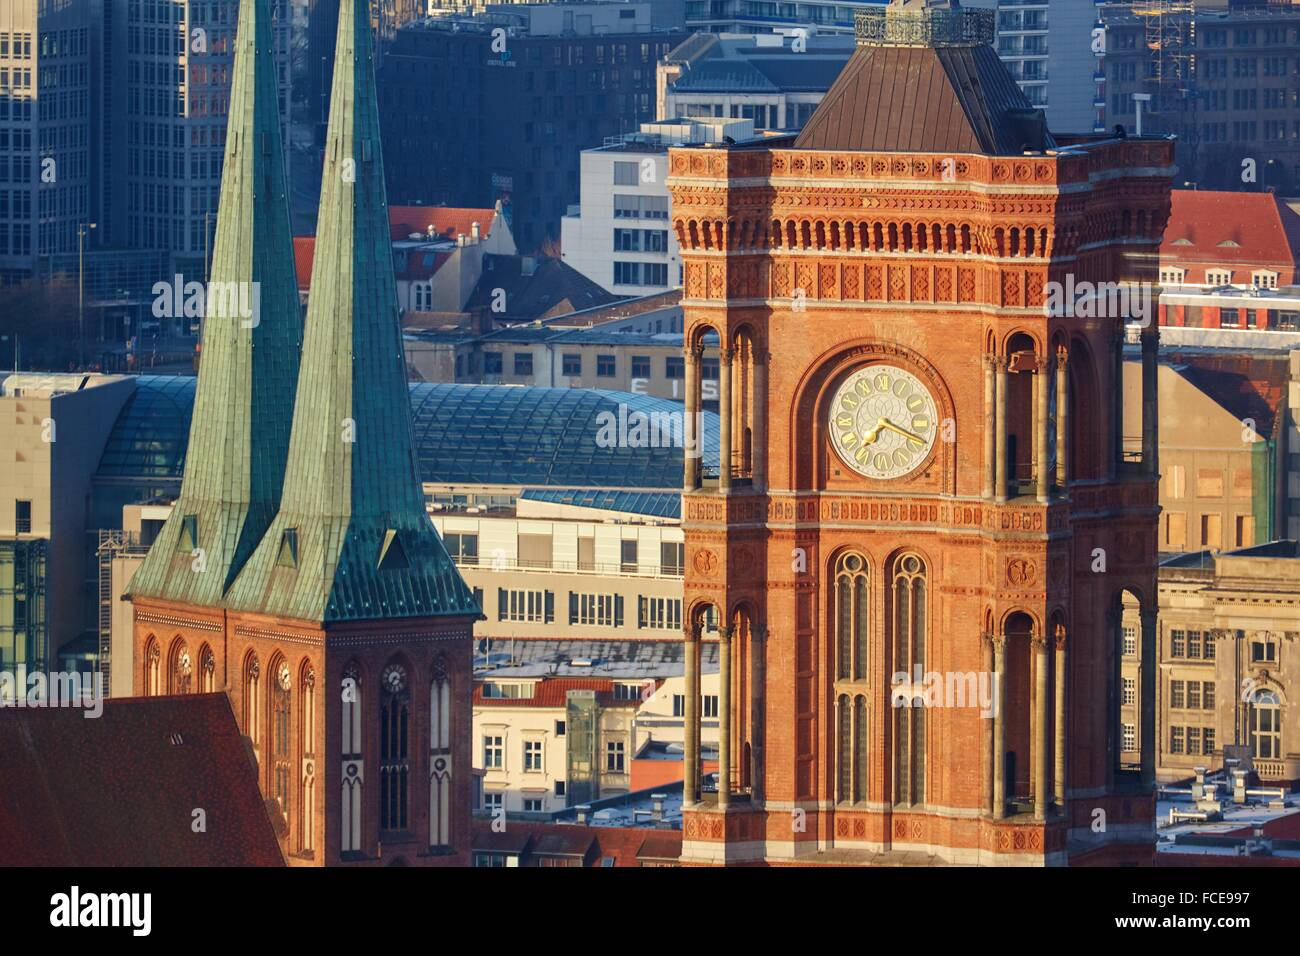 Rotes Rathaus Red City Hall, Alexanderplatz, Berlin, Germany. - Stock Image